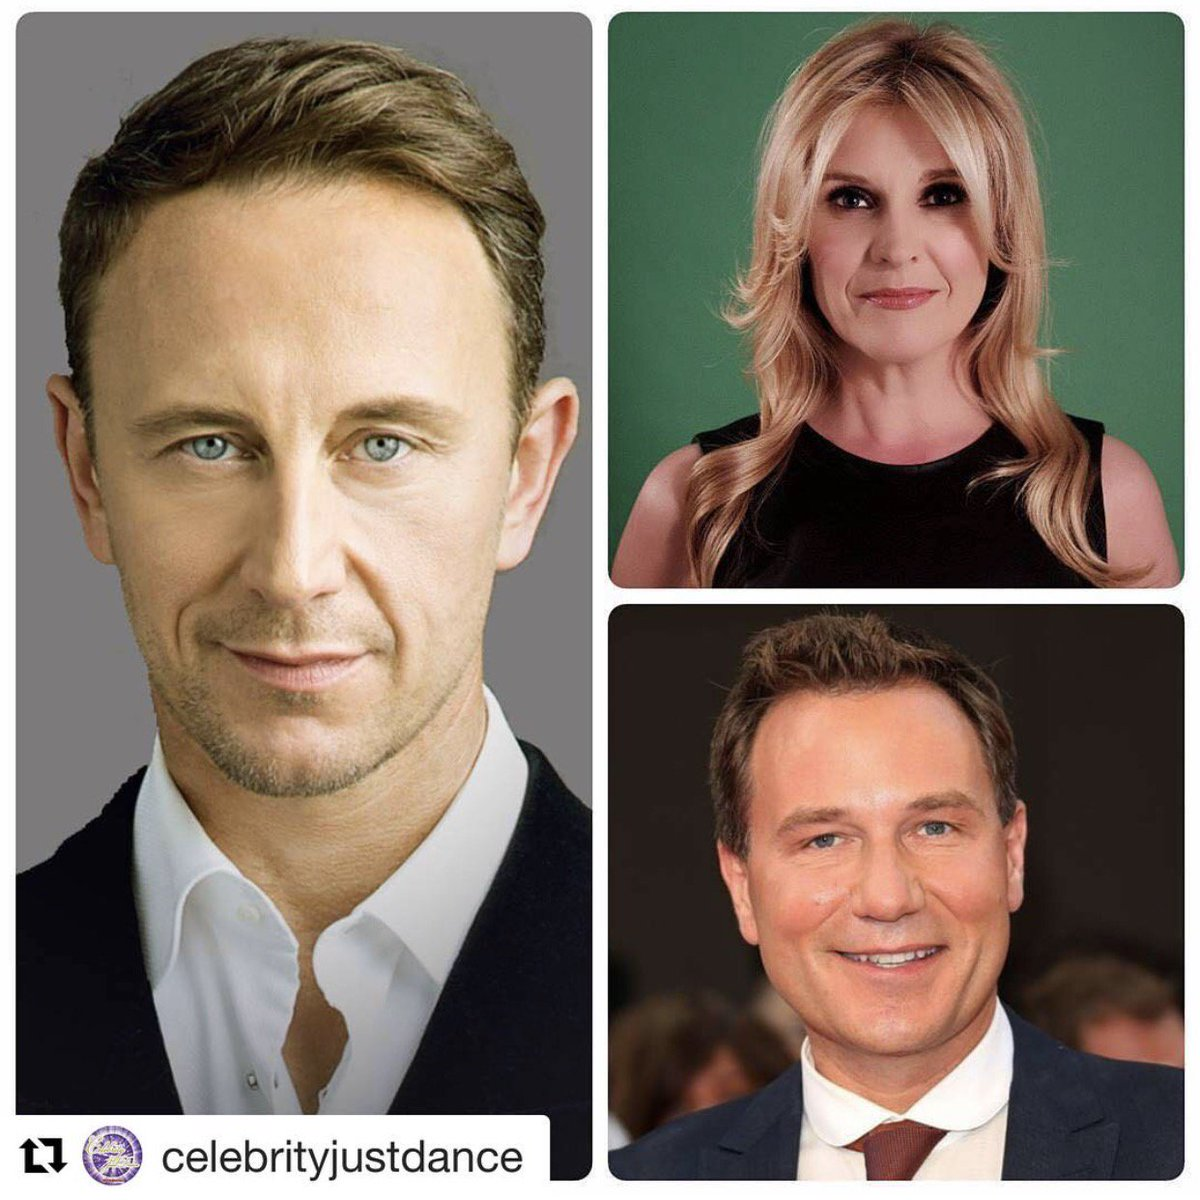 This year on Celebrity JustDance - our Head Judge -@ianwaite! Along on our  studded panel are @yvieburnett &amp; @tvsrichardarnold! #psyched  <br>http://pic.twitter.com/OL5lDpe212